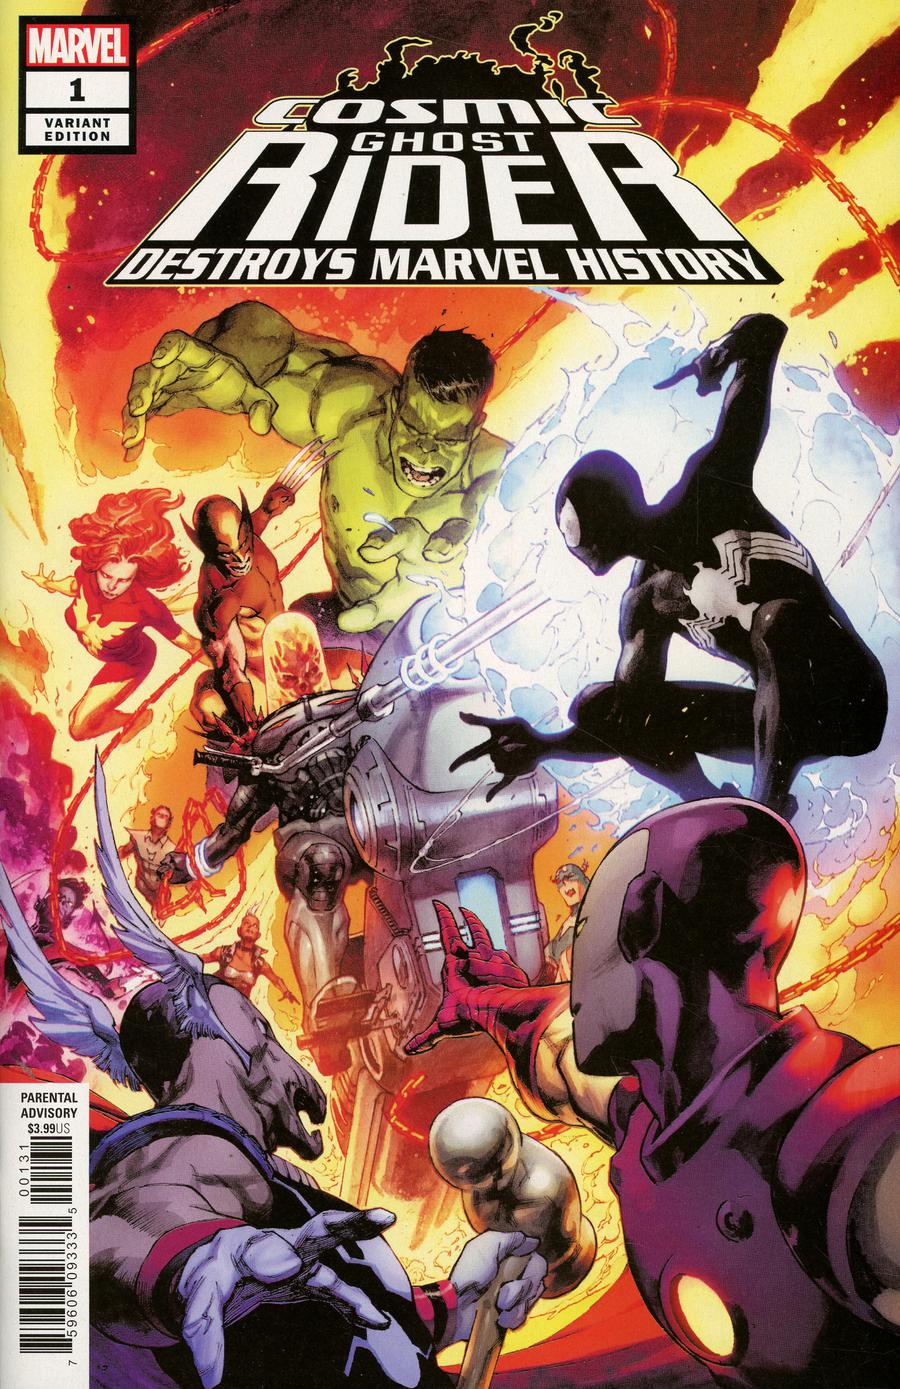 Cosmic Ghost Rider Destroys Marvel History #1 Cover E Incentive Jerome Opena Variant Cover